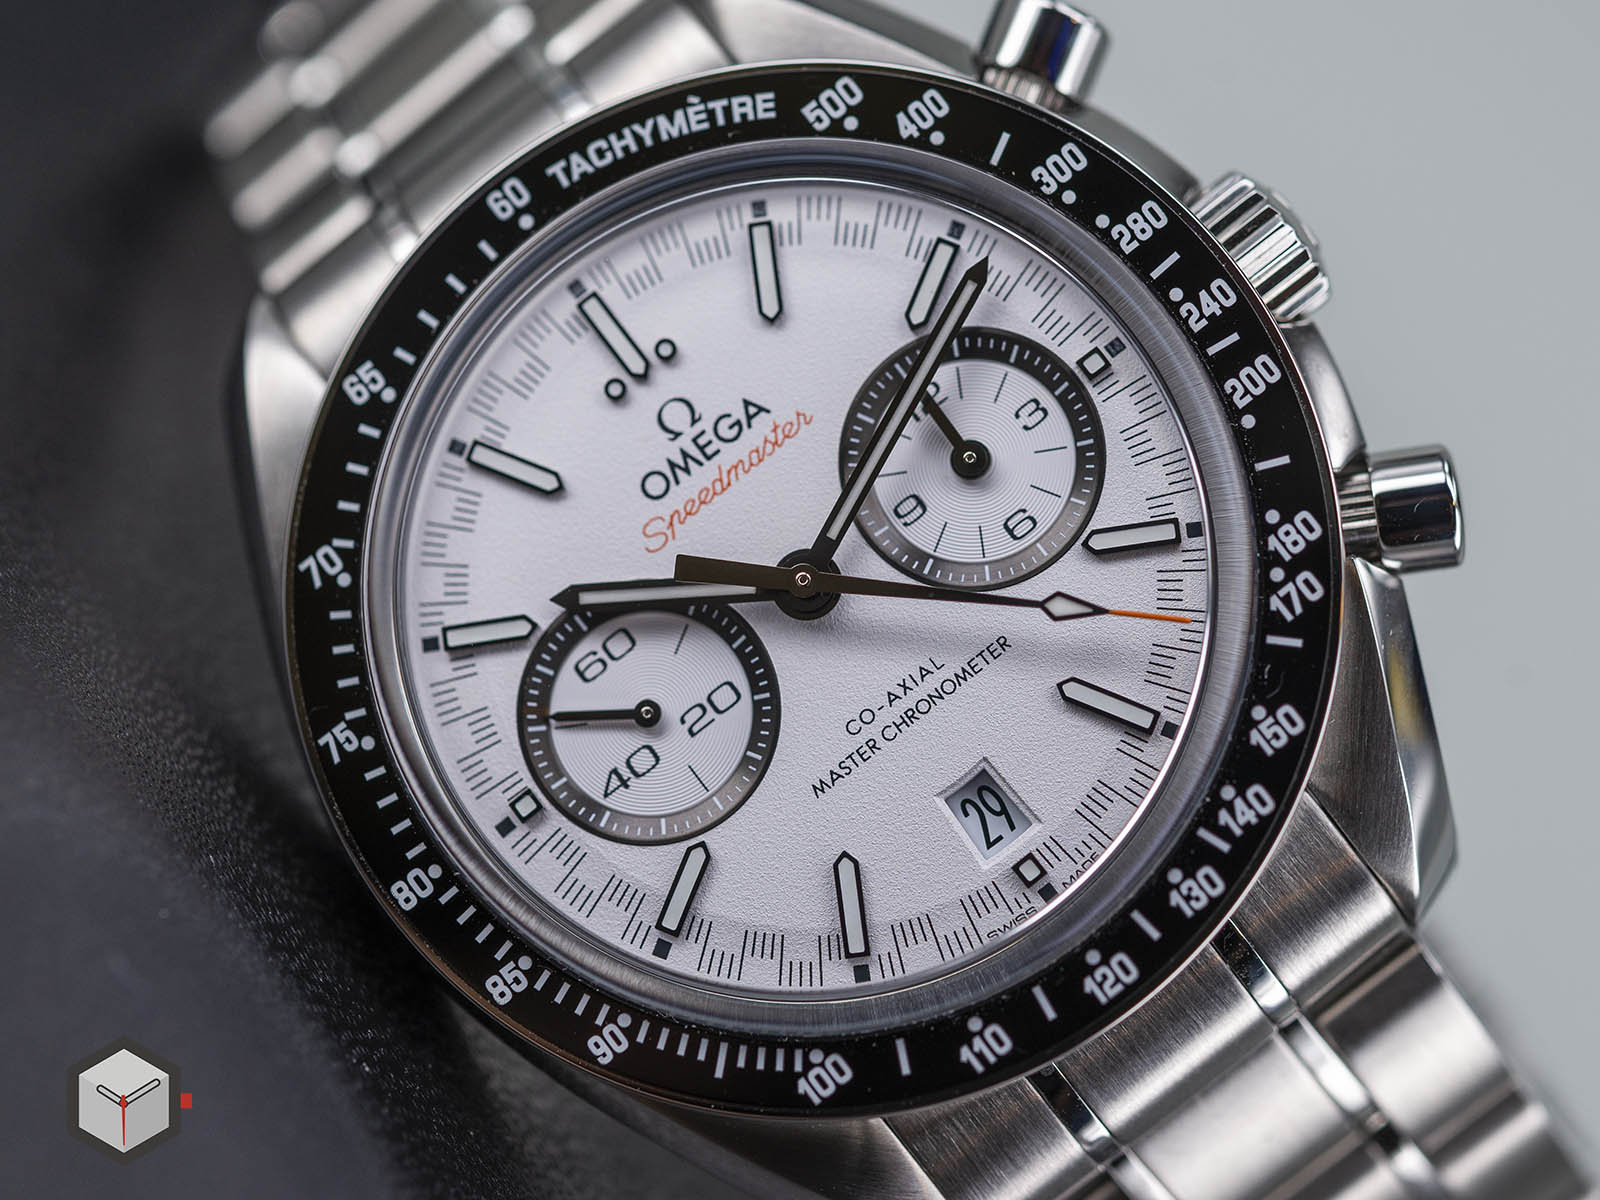 329-30-44-51-04-001-omega-speedmaster-racing-co-axial-master-5.jpg